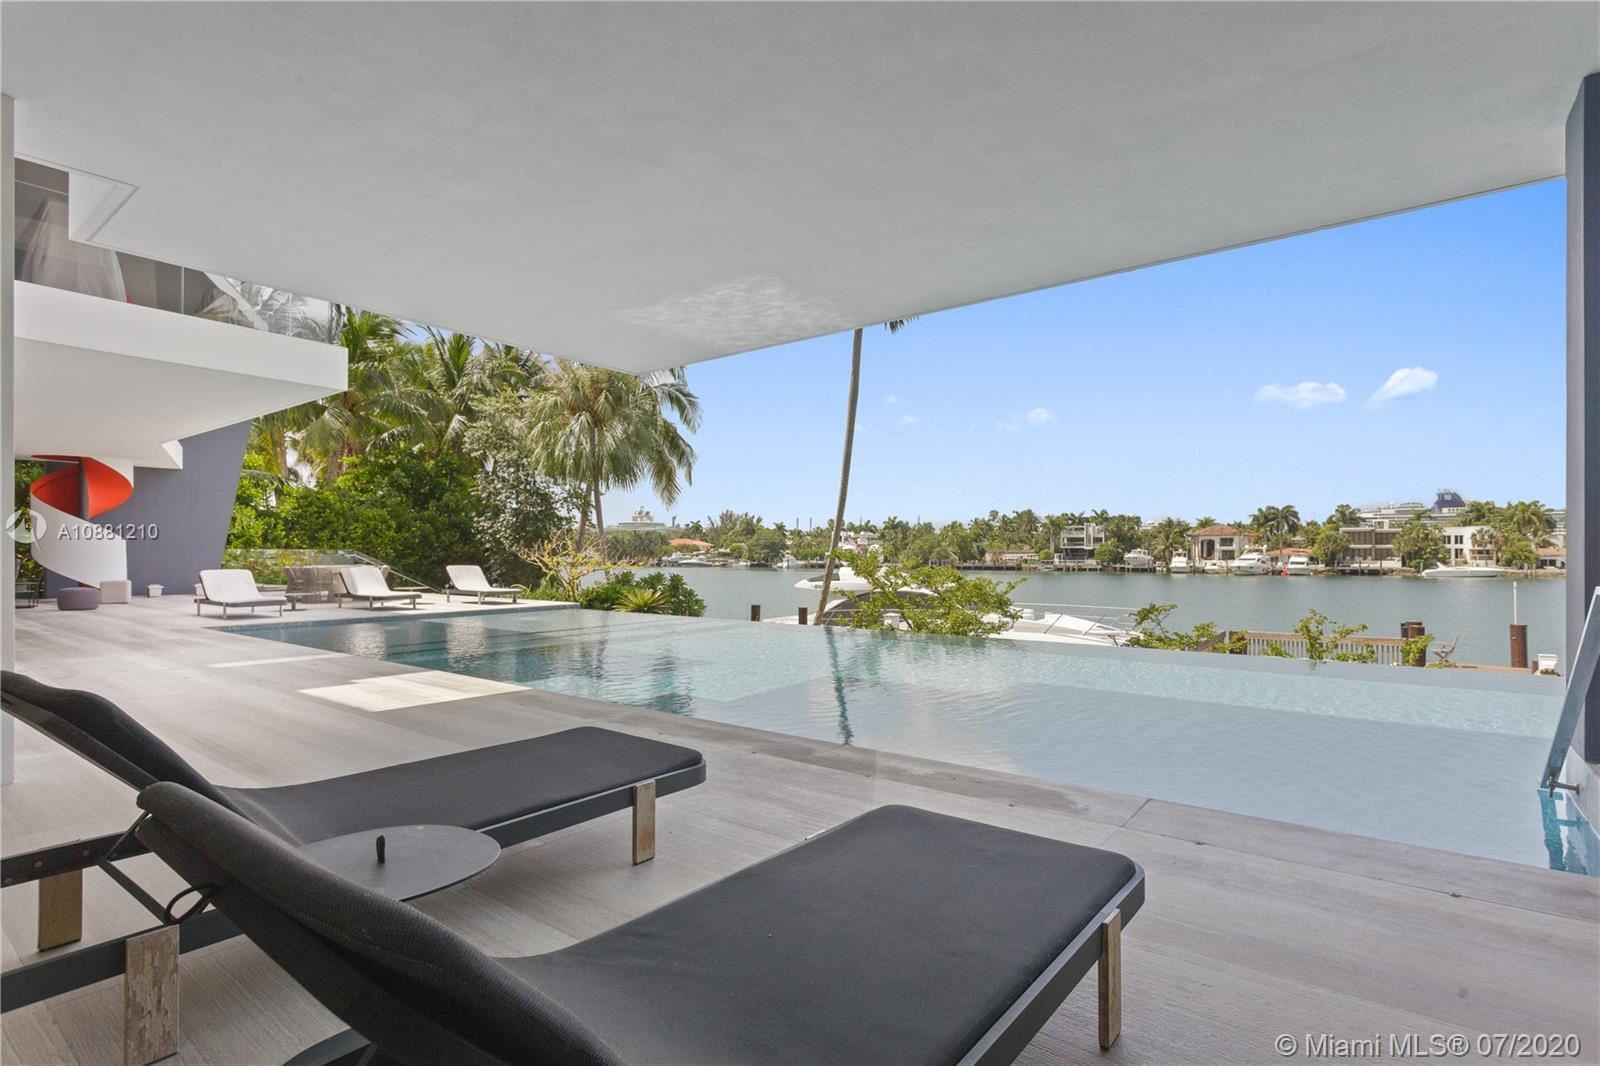 Photo 28 of Listing MLS a10881210 in 370 S Hibiscus Dr Miami Beach FL 33139